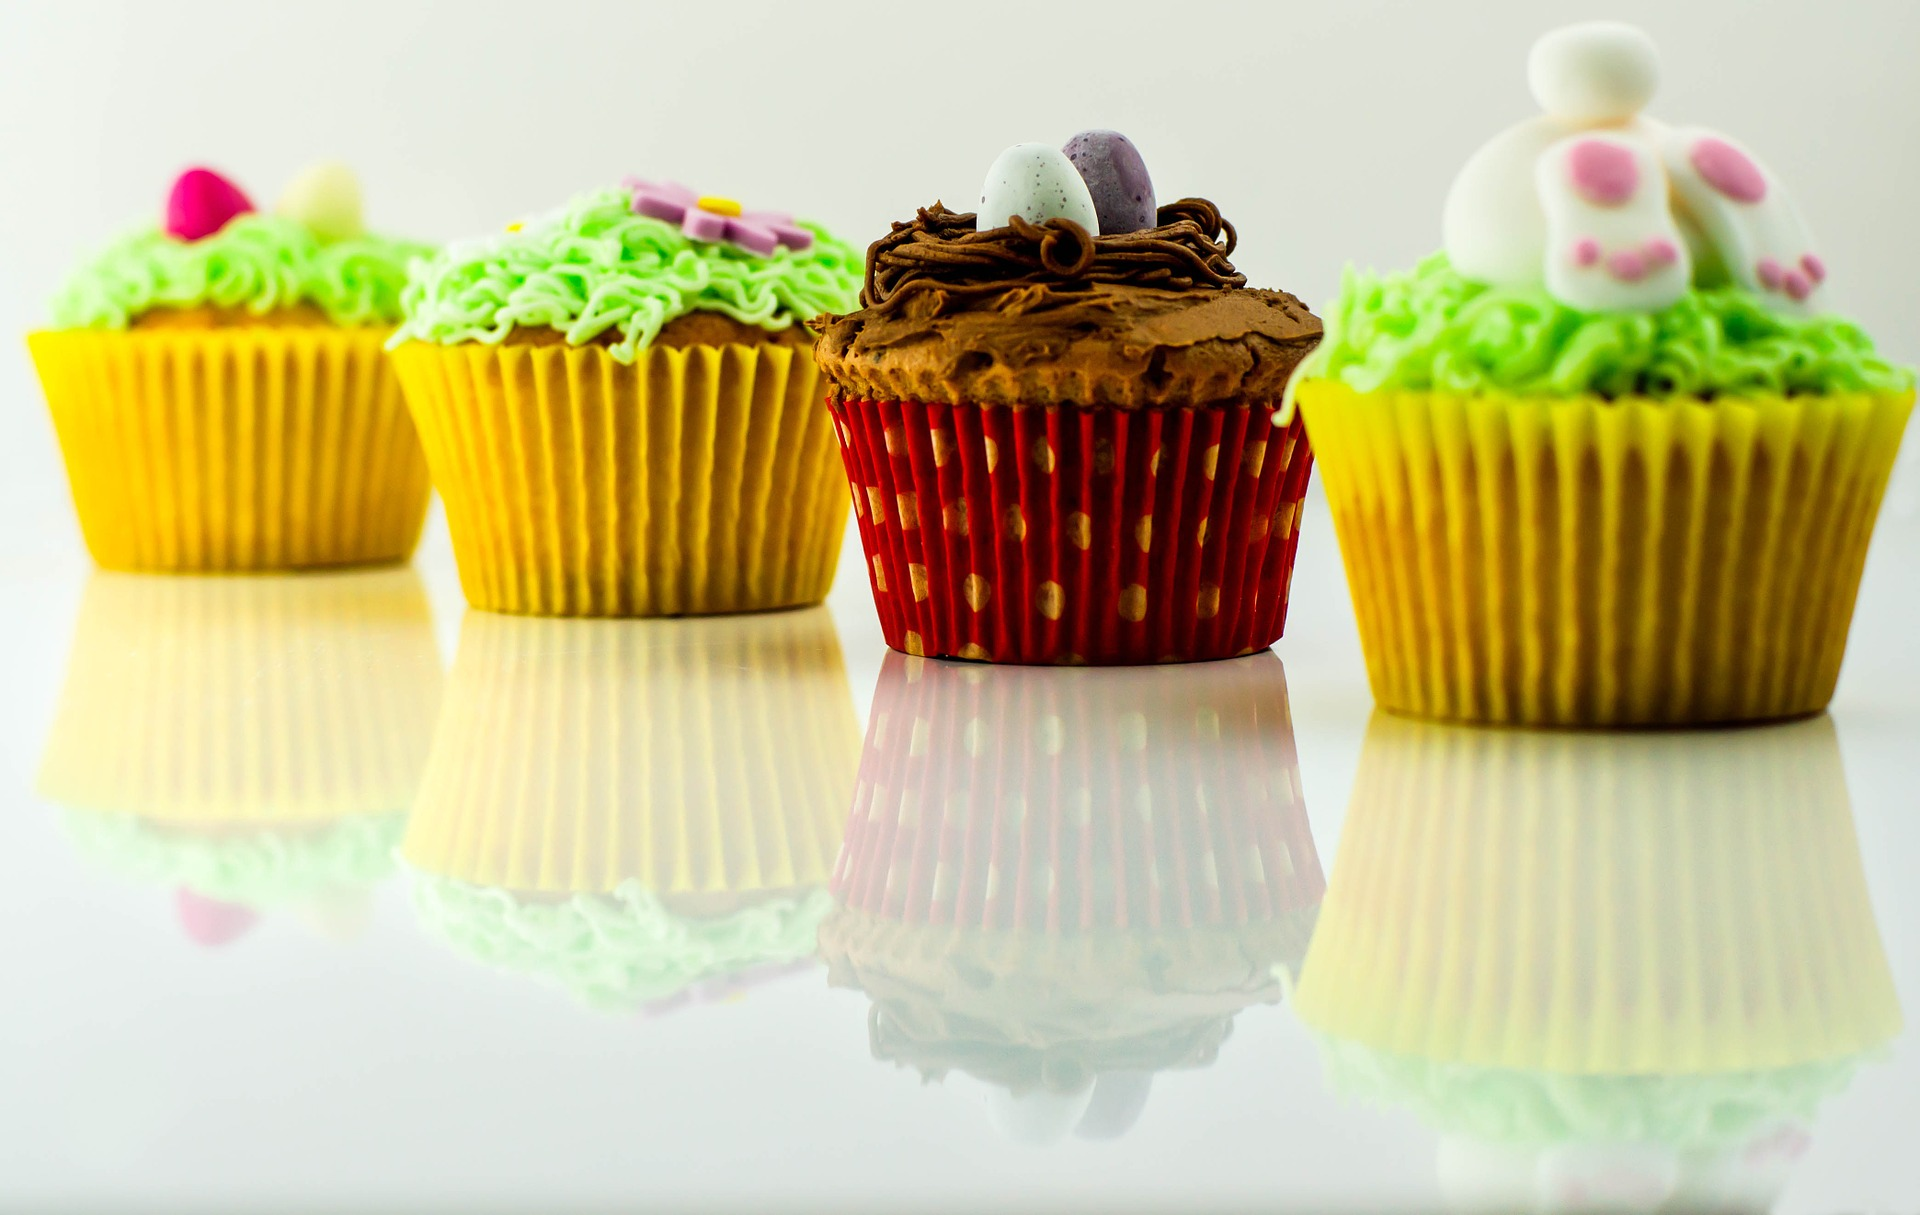 Four beautifully decorated cupcakes in colourful cases